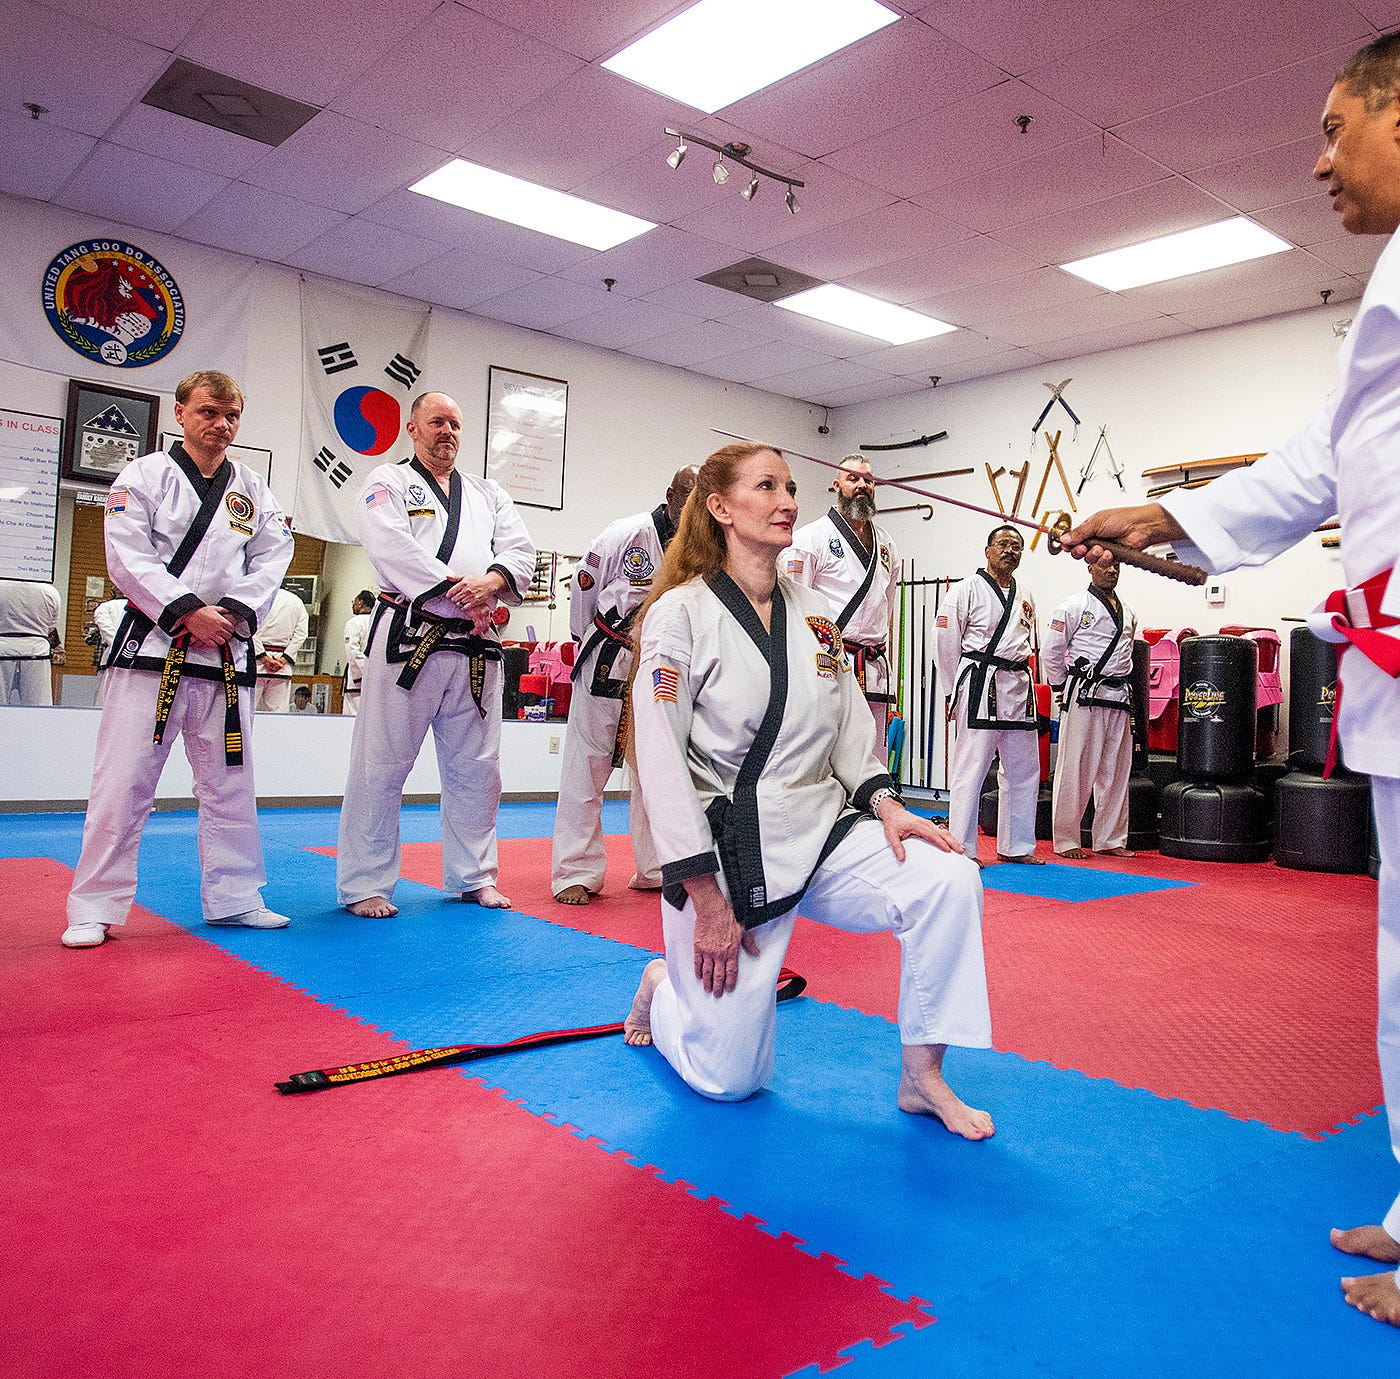 She's a master: Montgomery woman earns 8th degree black belt